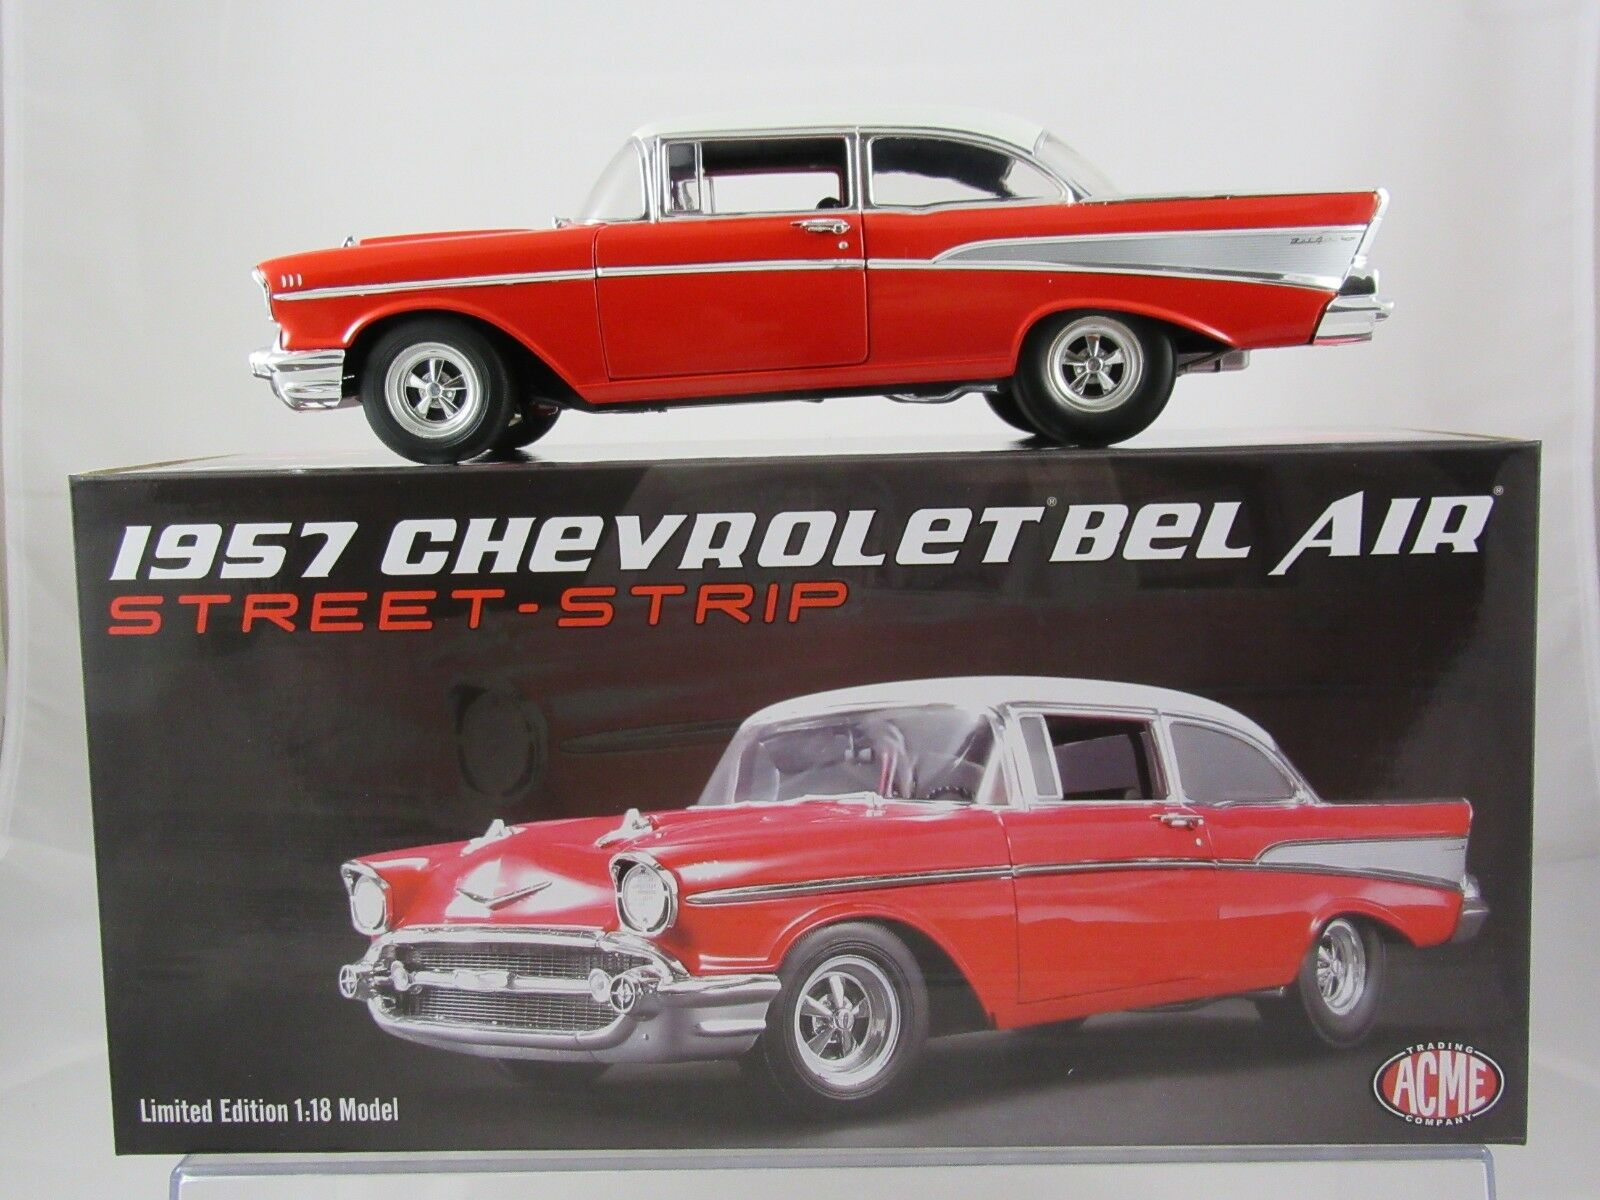 Acme 1957 Chevrolet Bel Air Red/White - Street/Strip A1807005